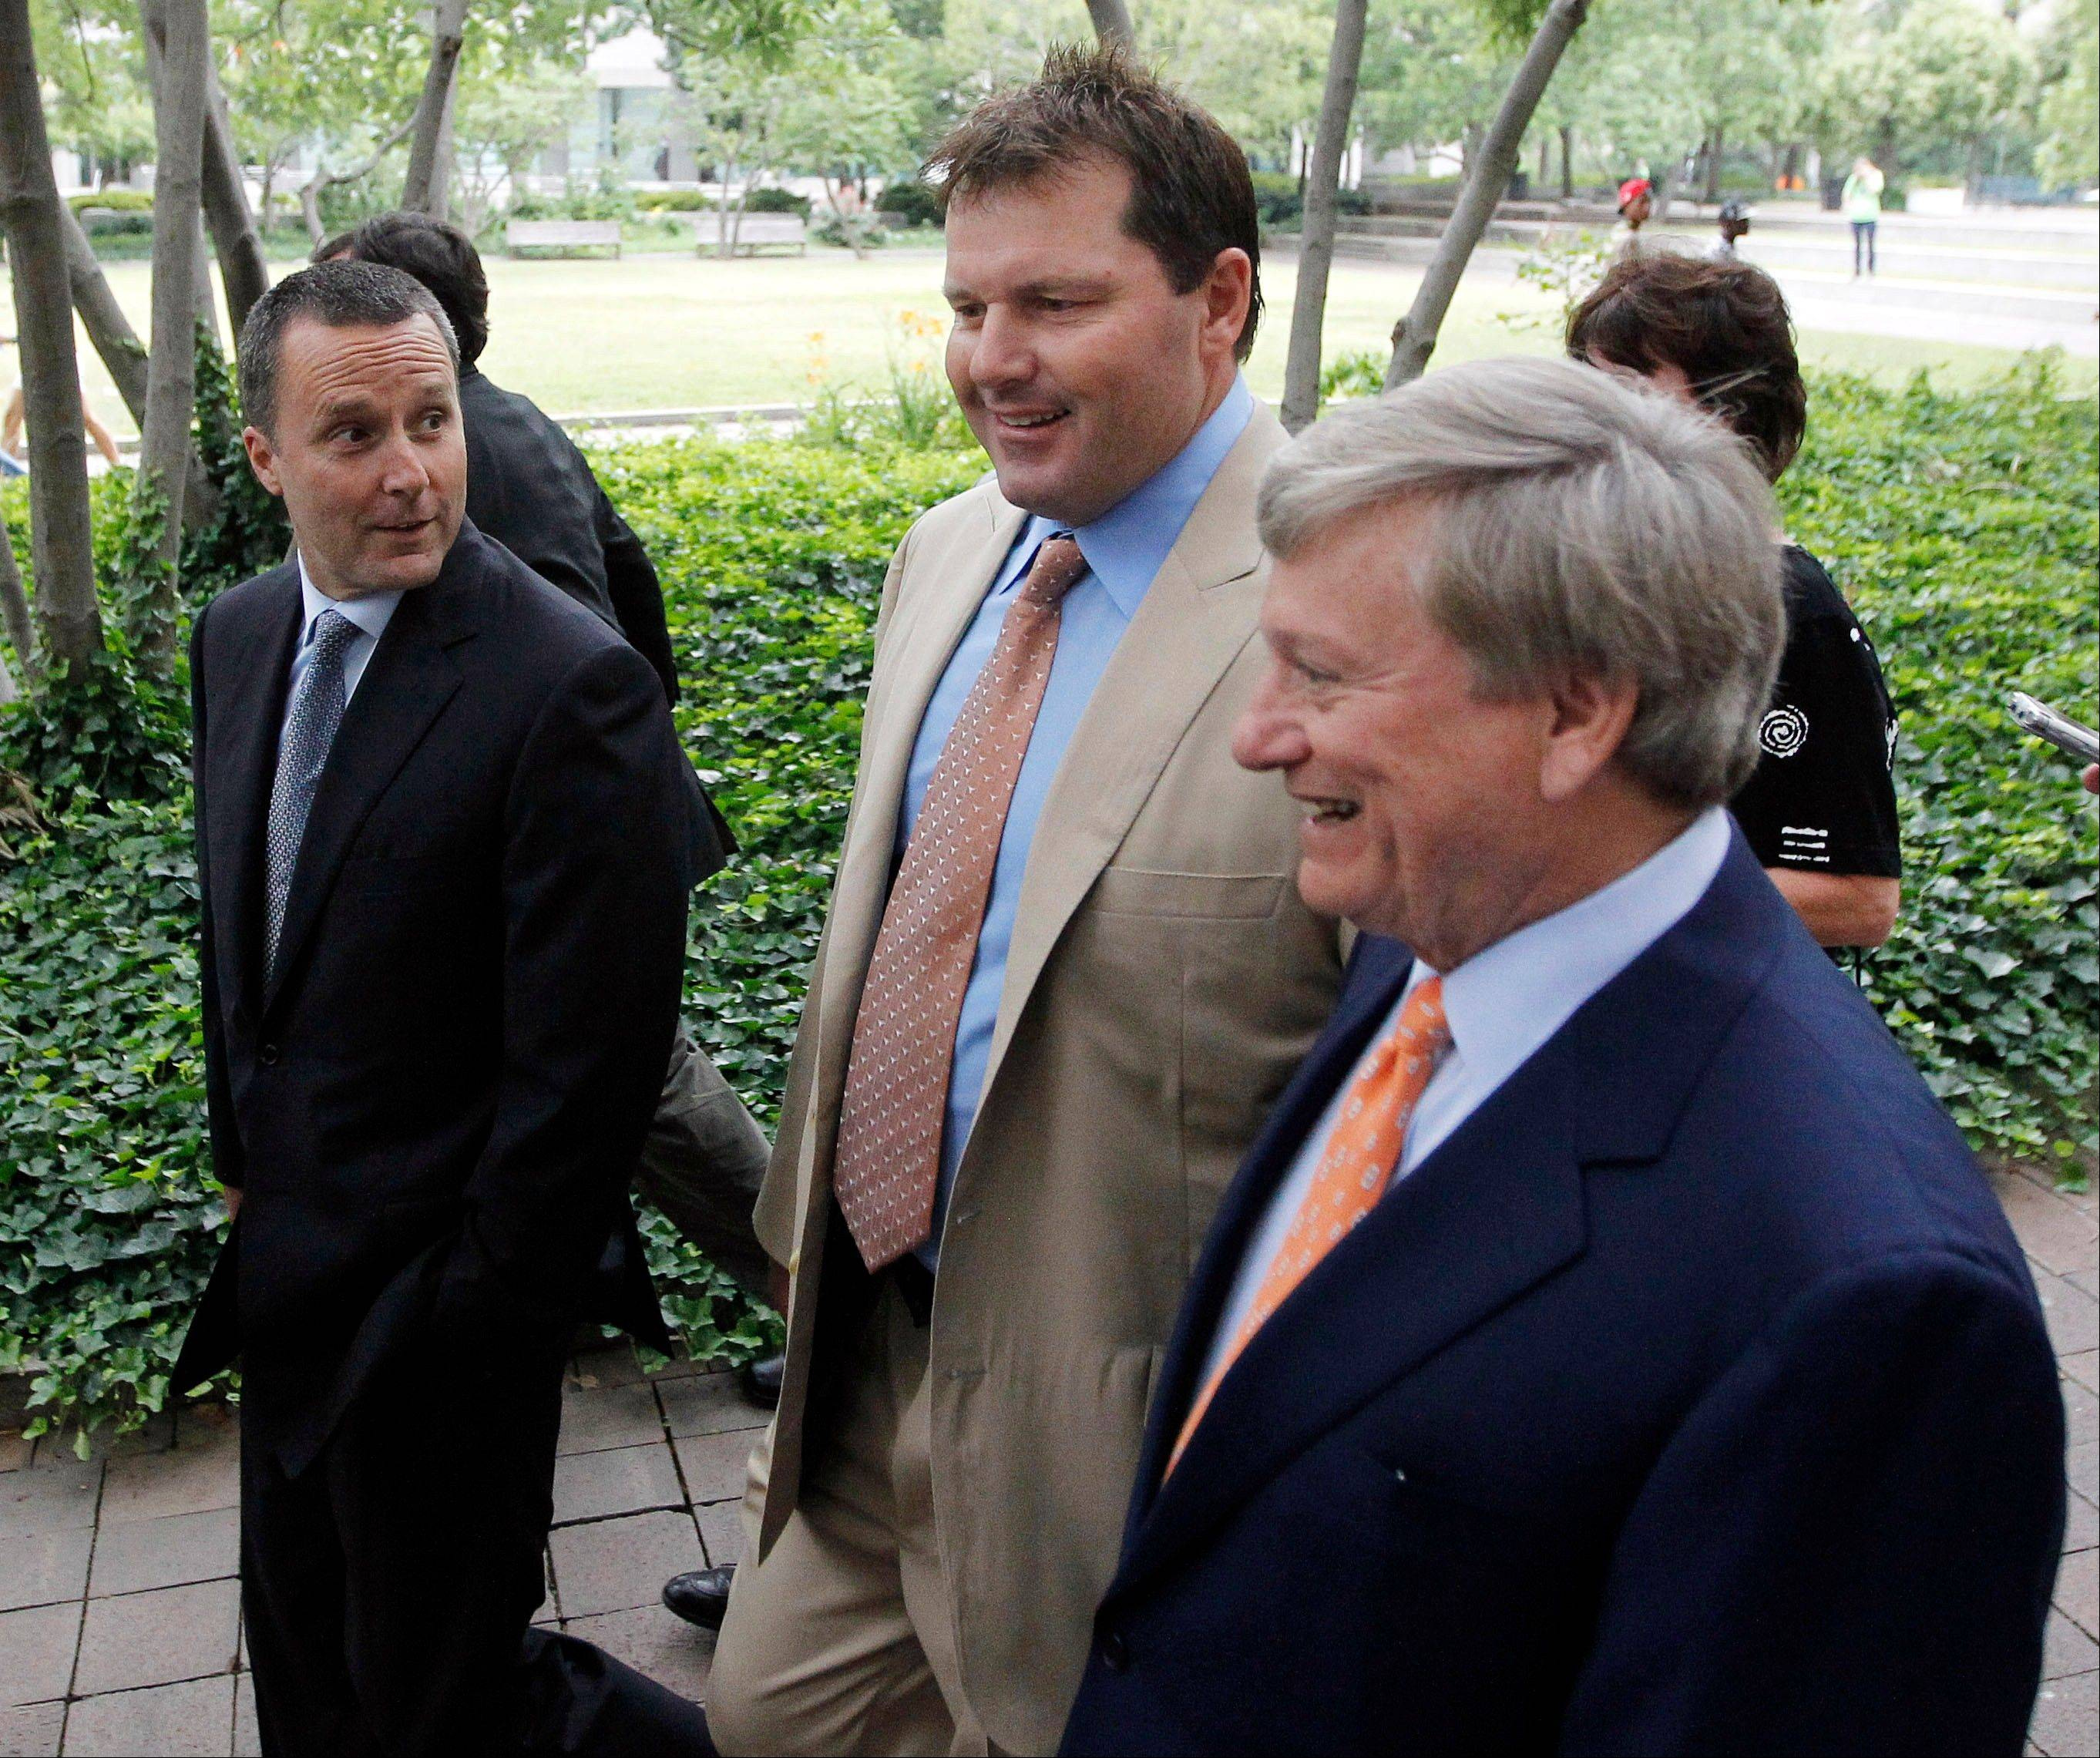 Roger Clemens found not guilty of perjury